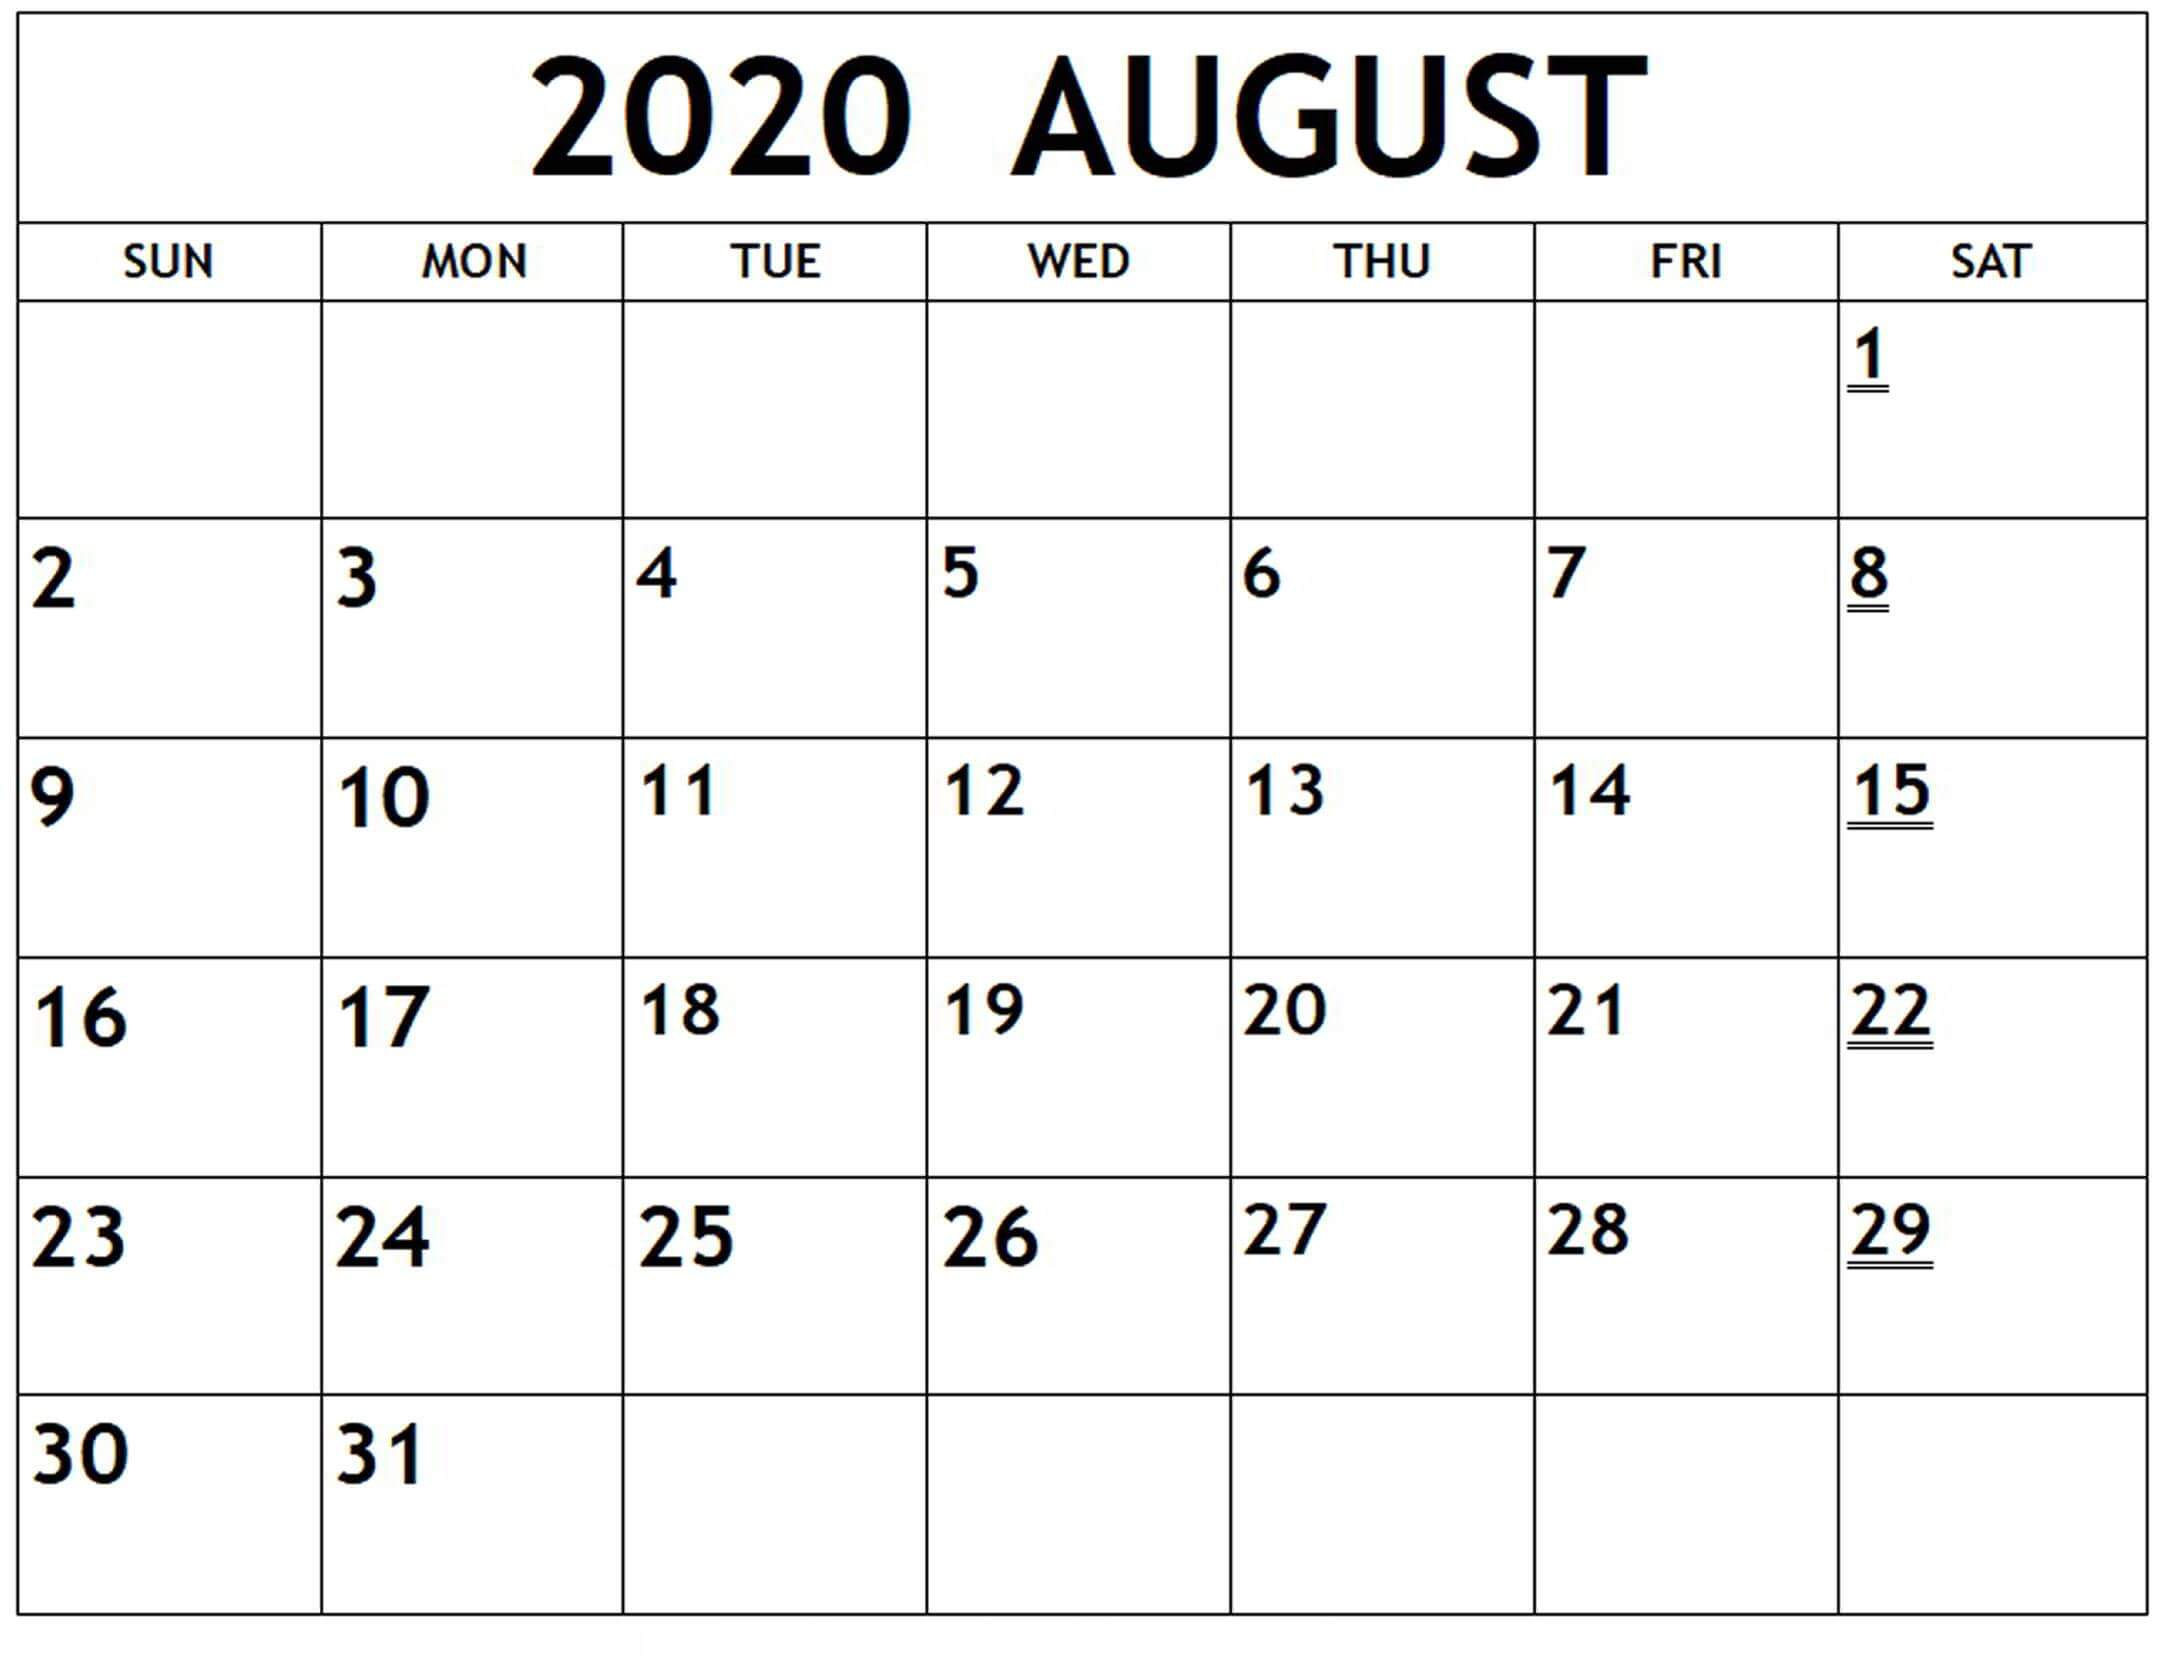 August 2020 Calendar With Holidays free